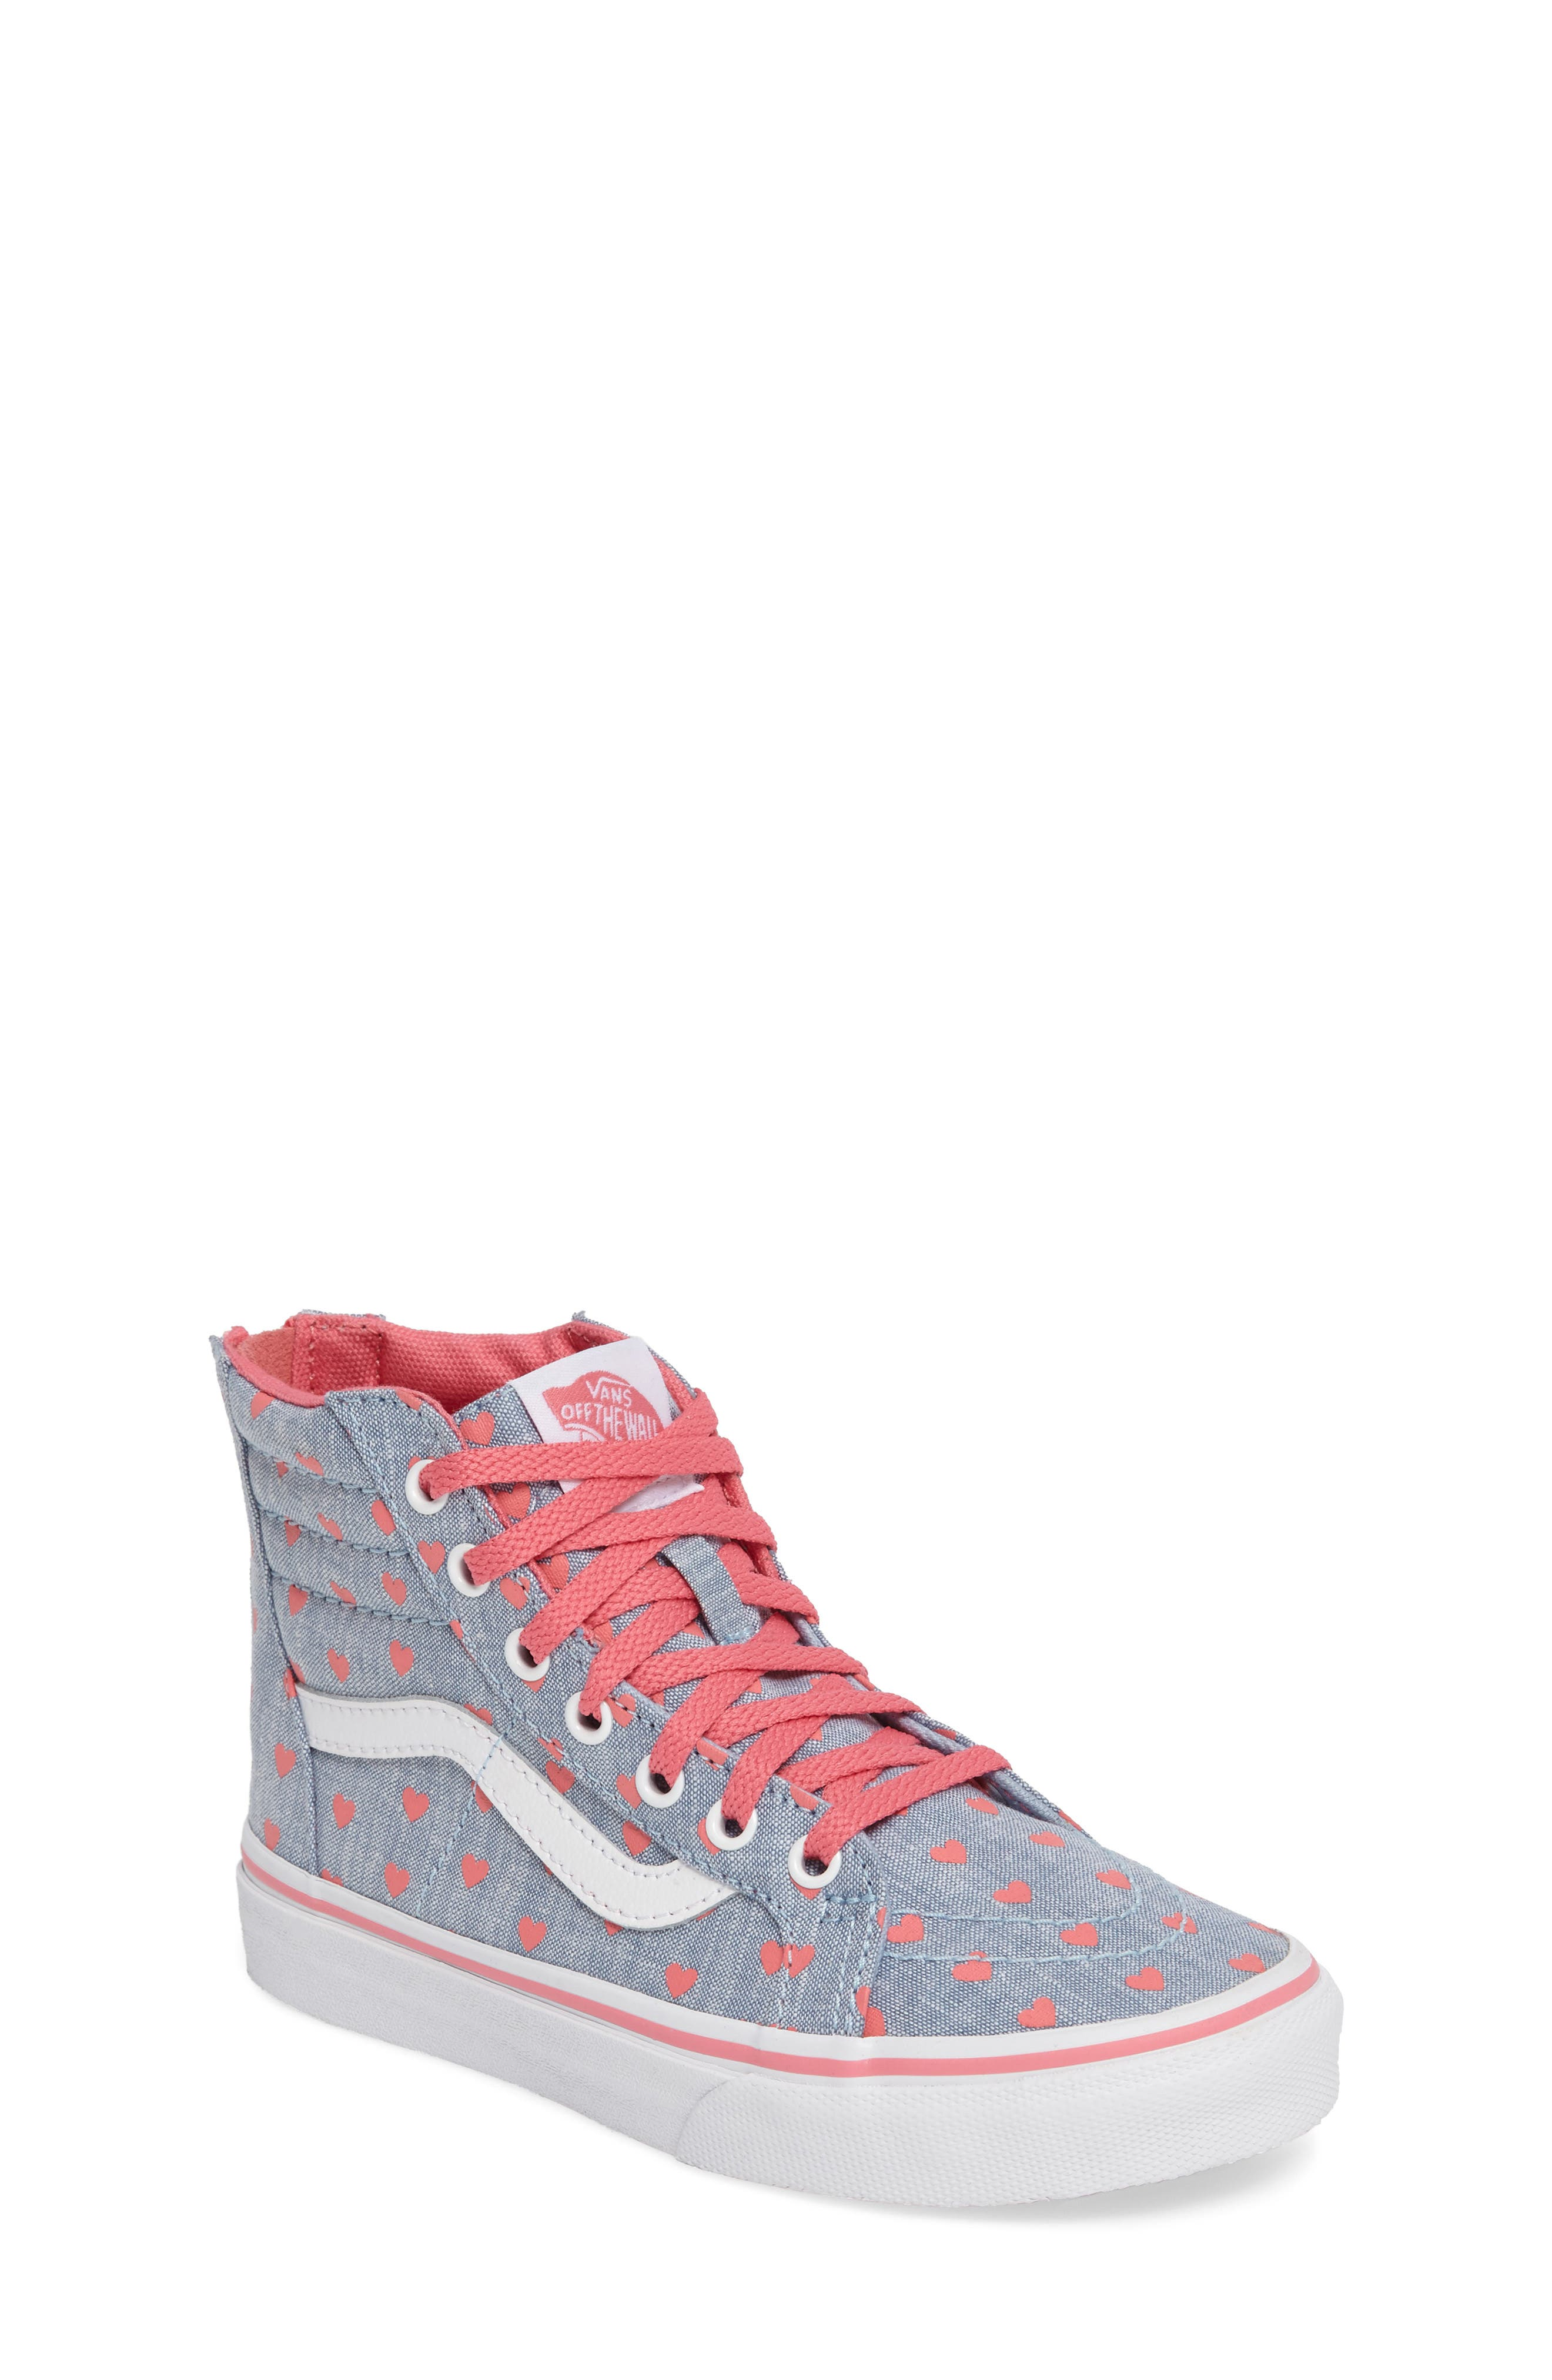 Vans SK8-HI Zip Heart Sneaker (Baby, Walker, Toddler, Little Kid & Big Kid)